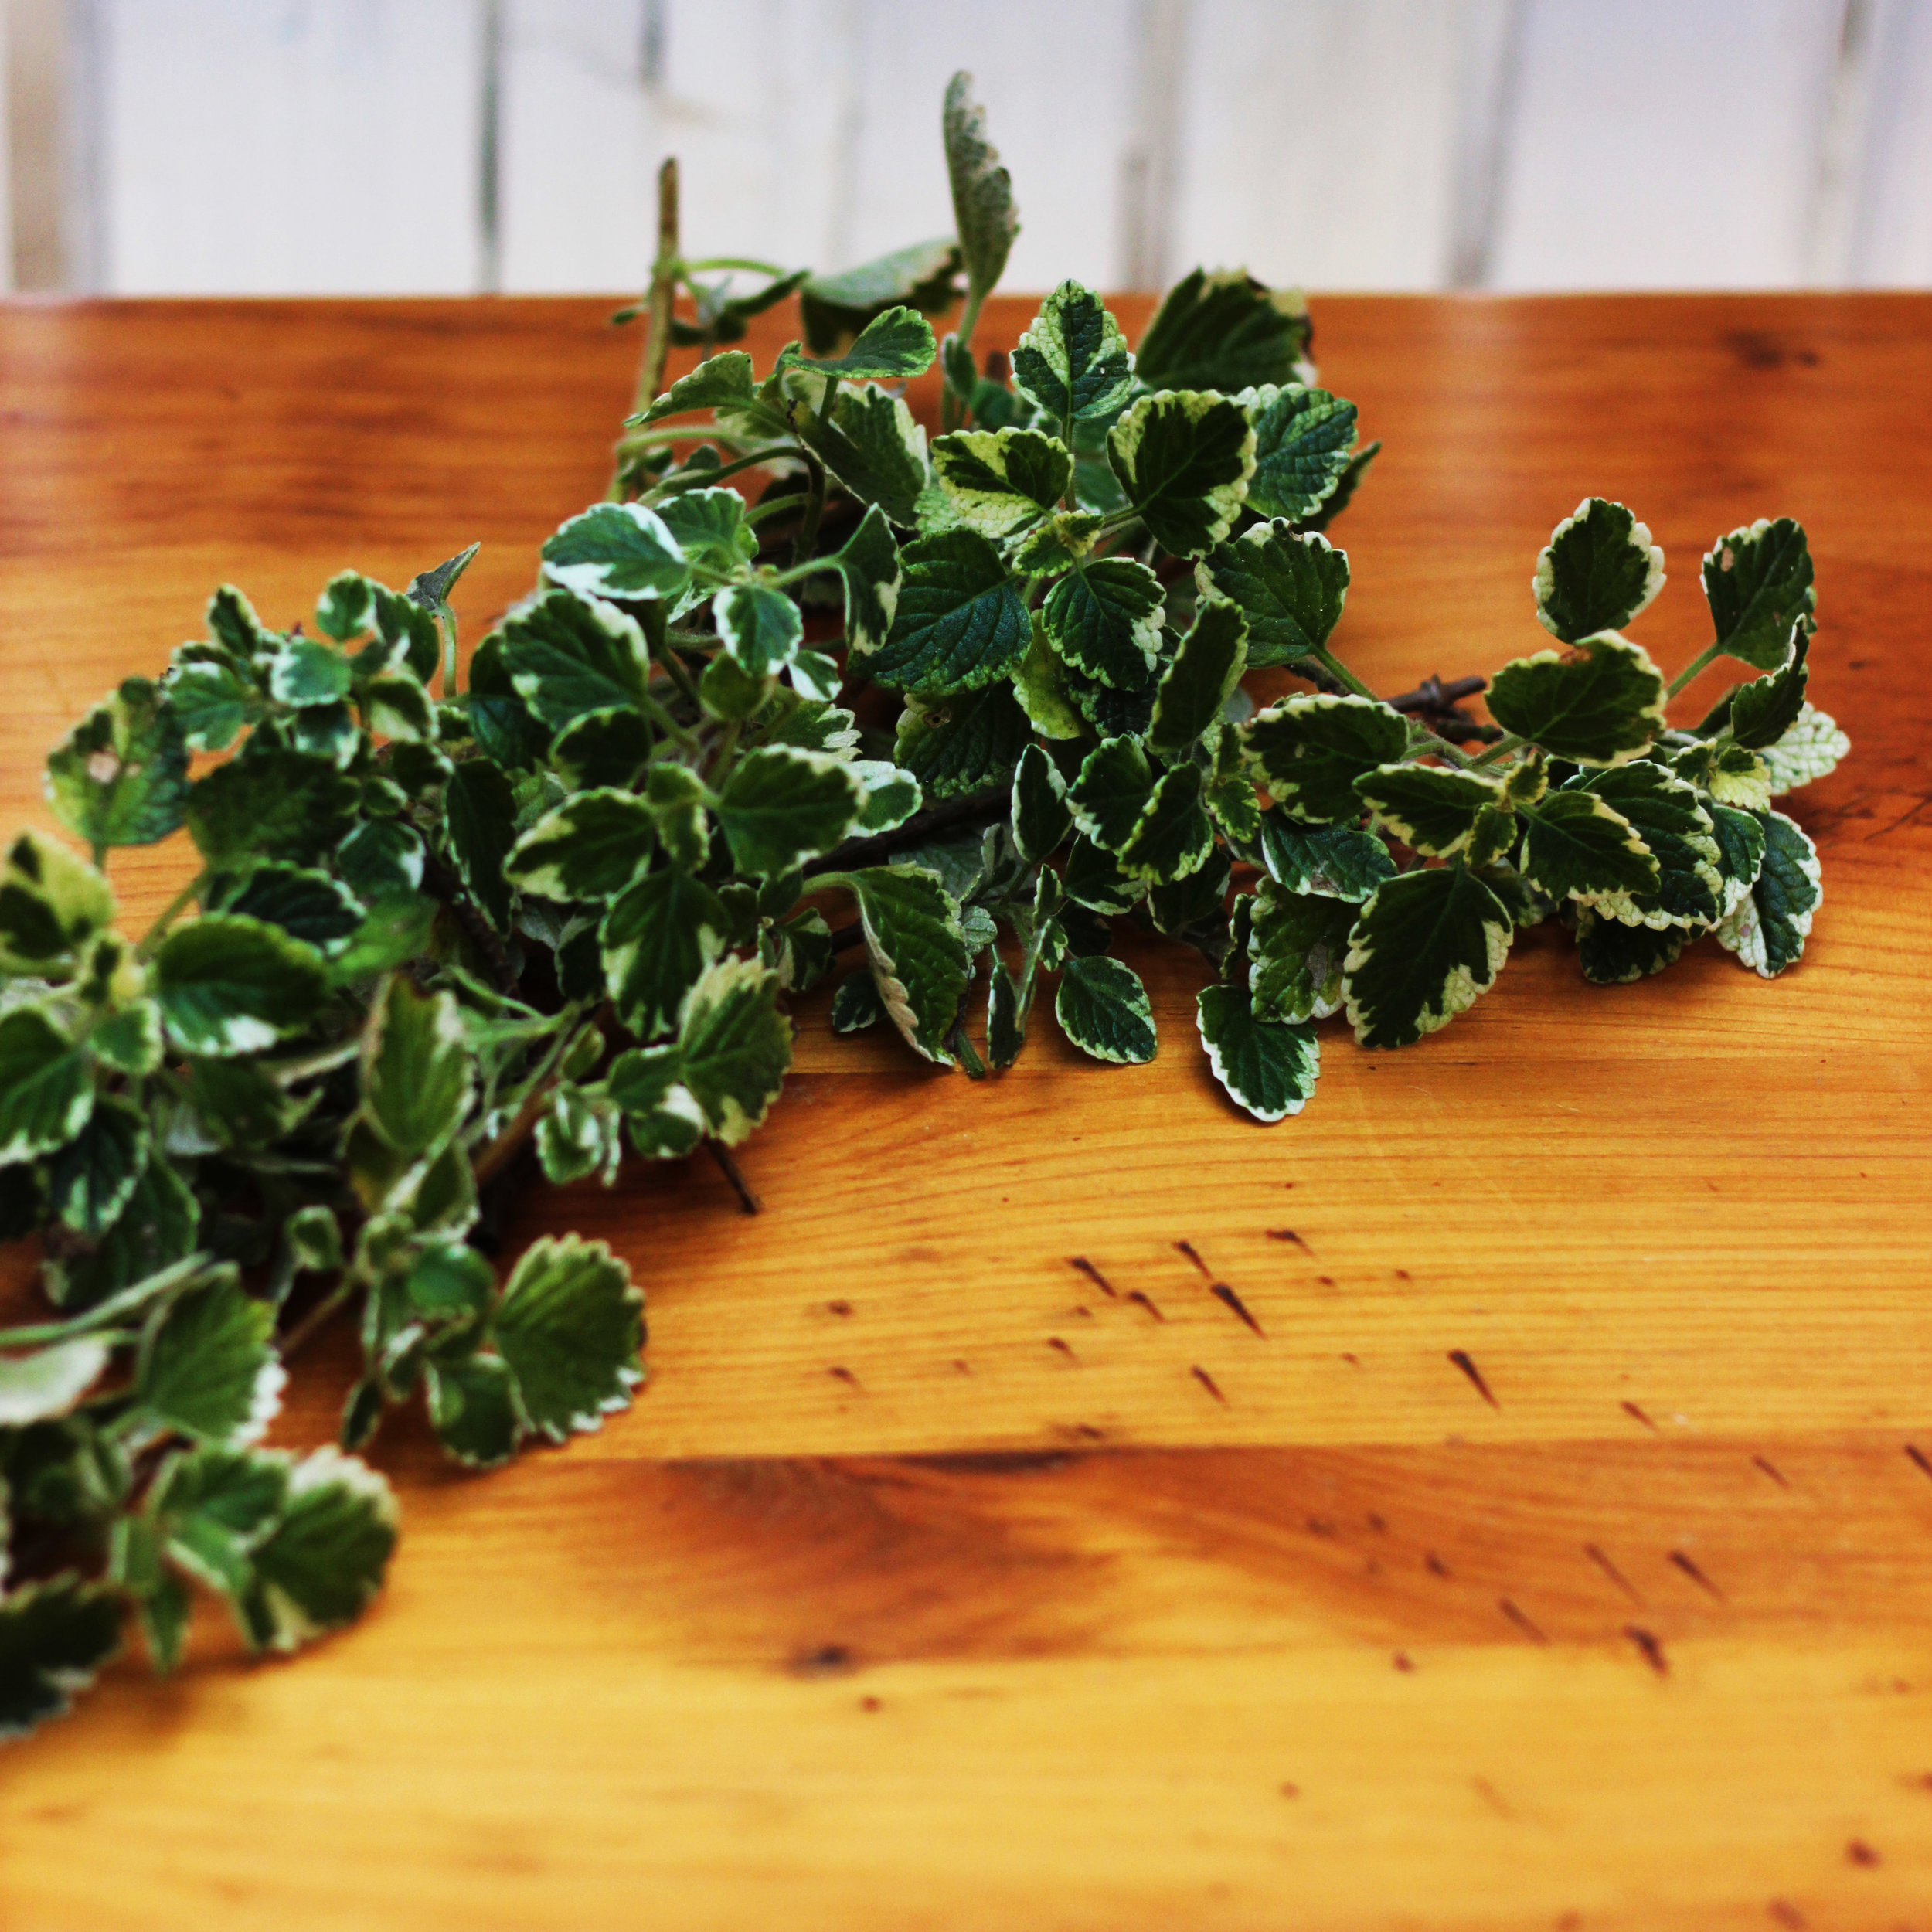 Add Swedish Ivy 8 - 12 inches long to fill in.